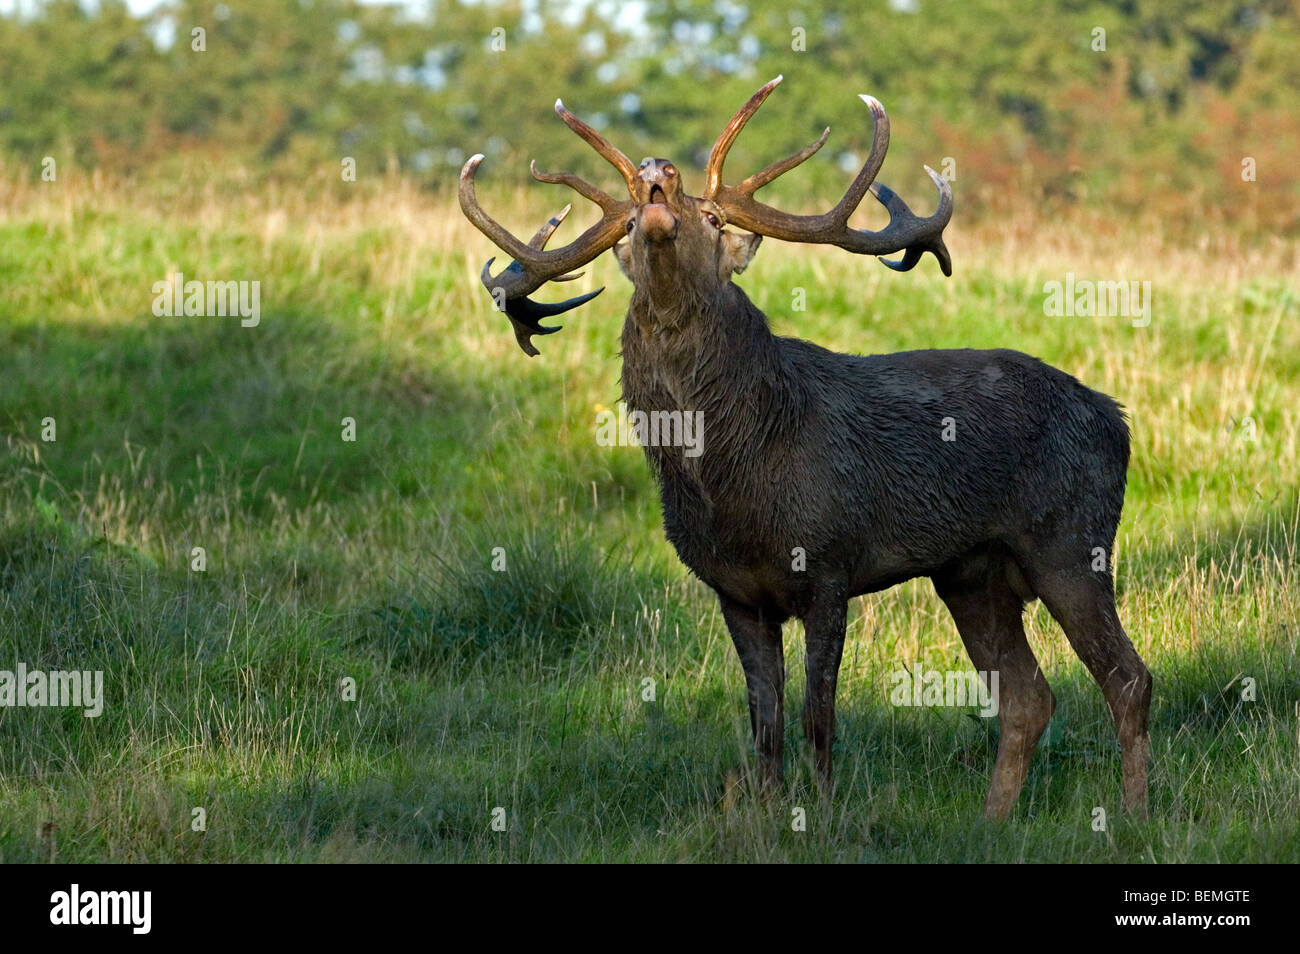 Red deer stag (Cervus elaphus) with large antlers calling / bellowing during the rutting season in autumn at forest - Stock Image